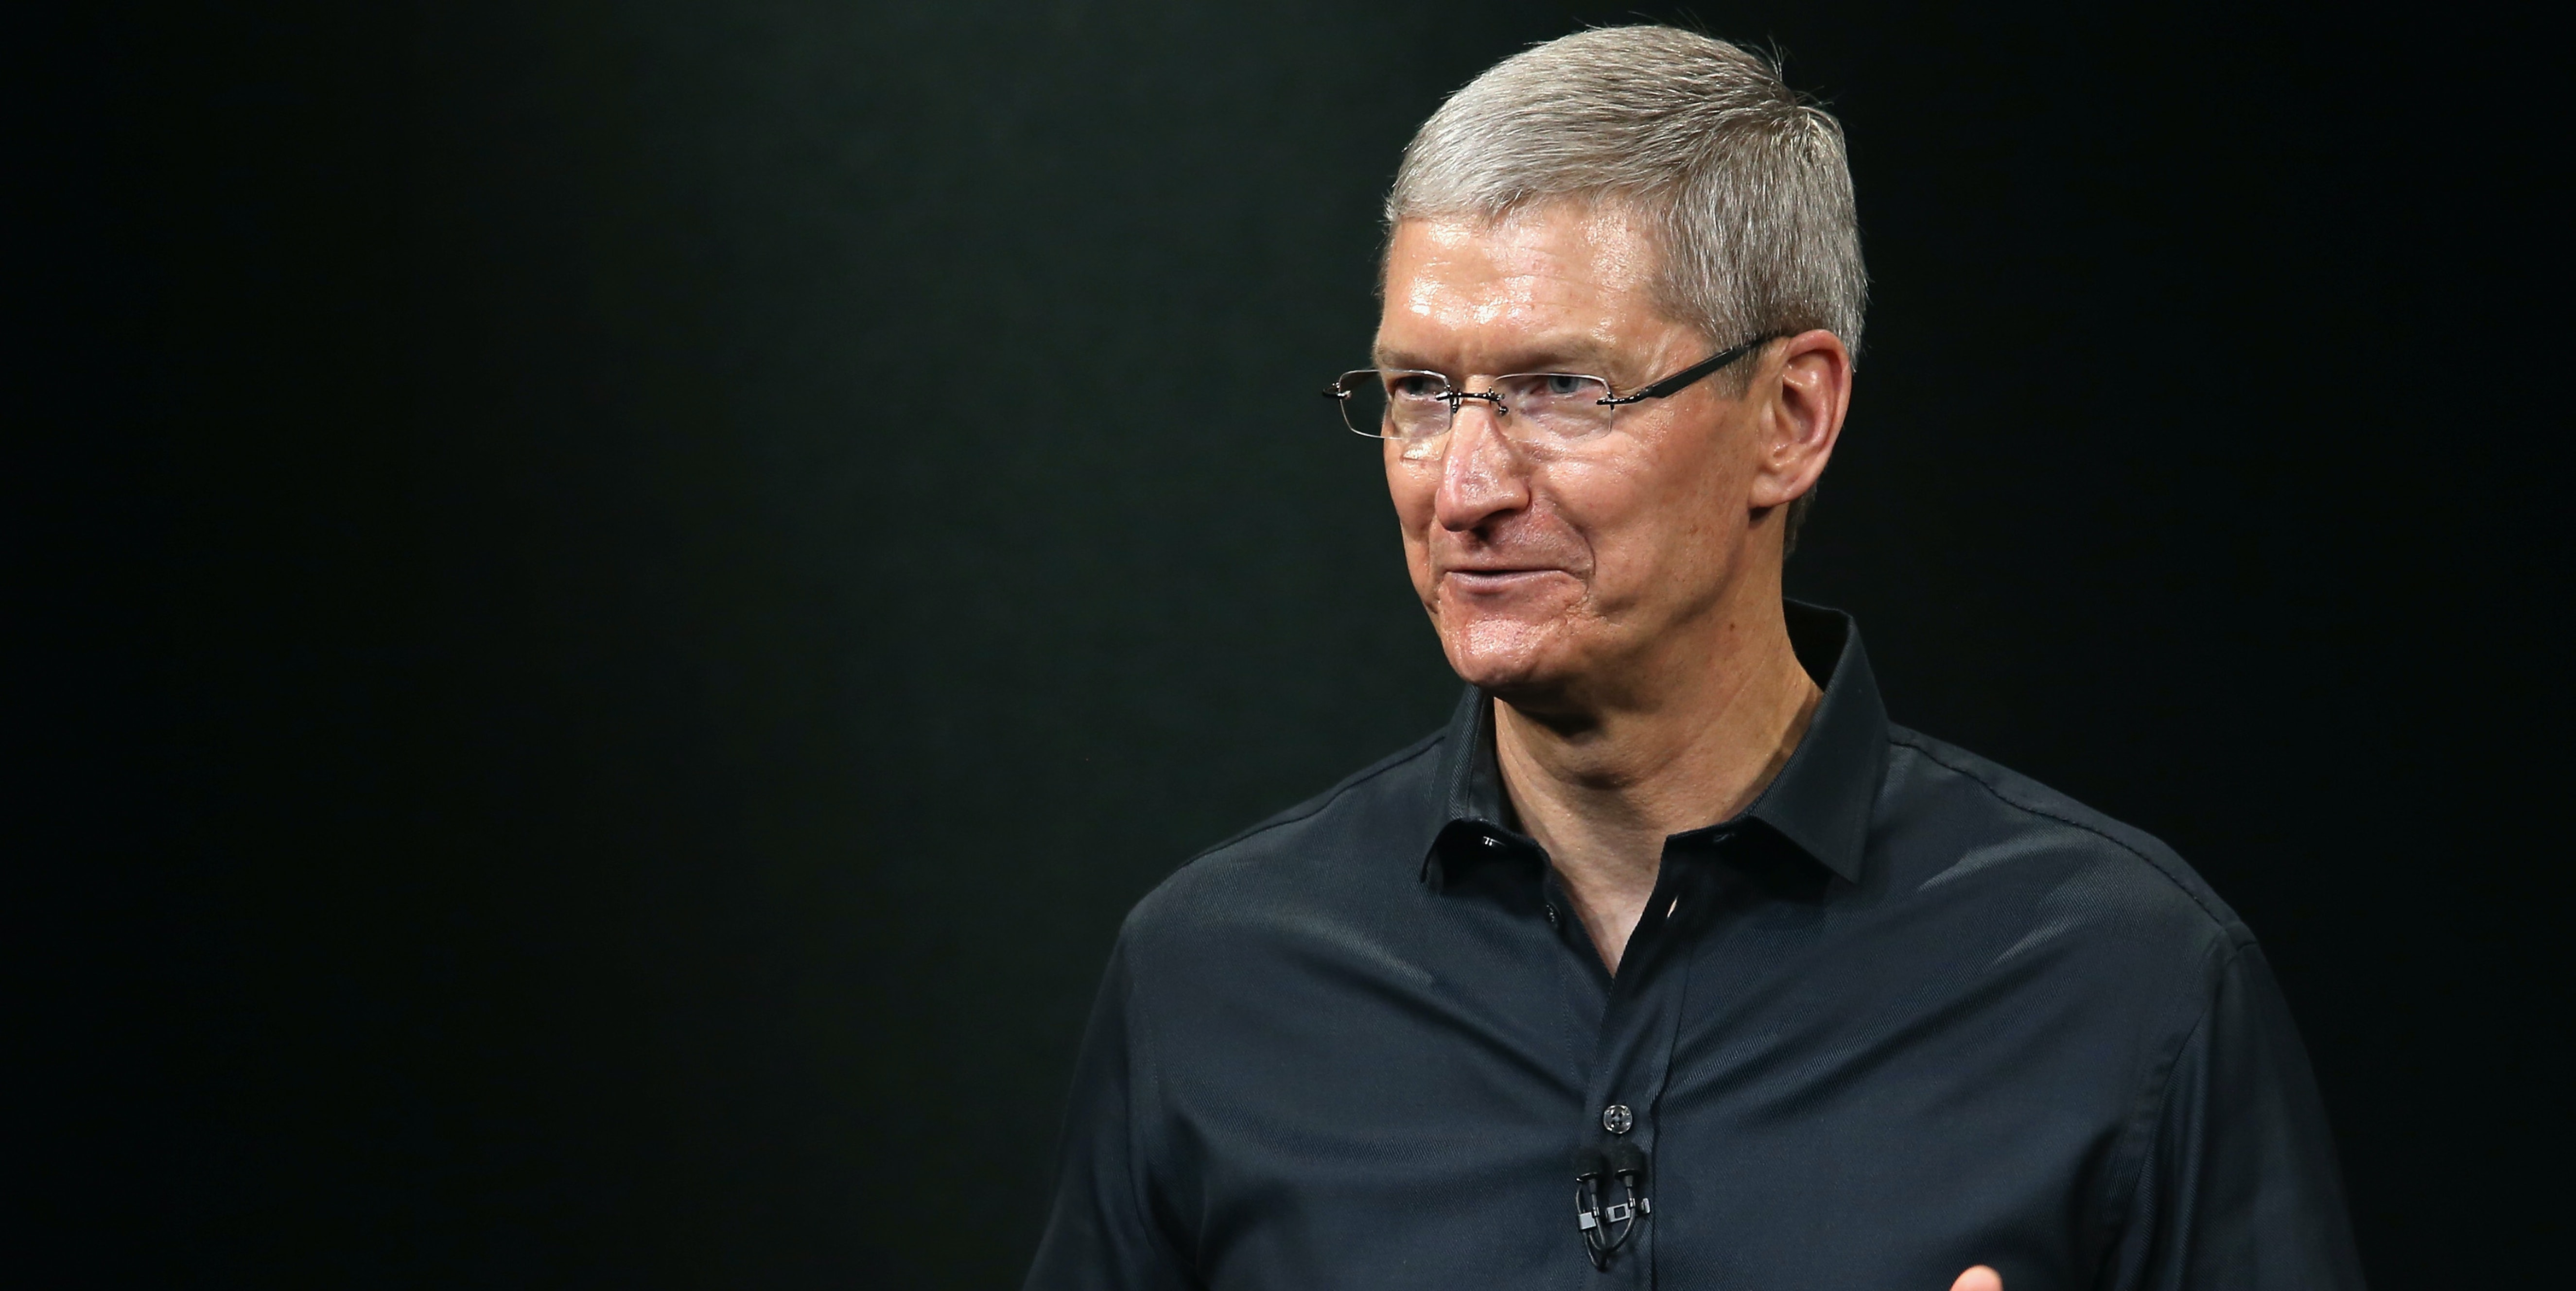 CUPERTINO, CA - SEPTEMBER 10:  Apple CEO Tim Cook speaks on stage during an Apple product announcement at the Apple campus on September 10, 2013 in Cupertino, California. The company is expected to launch at least one new iPhone model.  (Photo by Justin Sullivan/Getty Images)